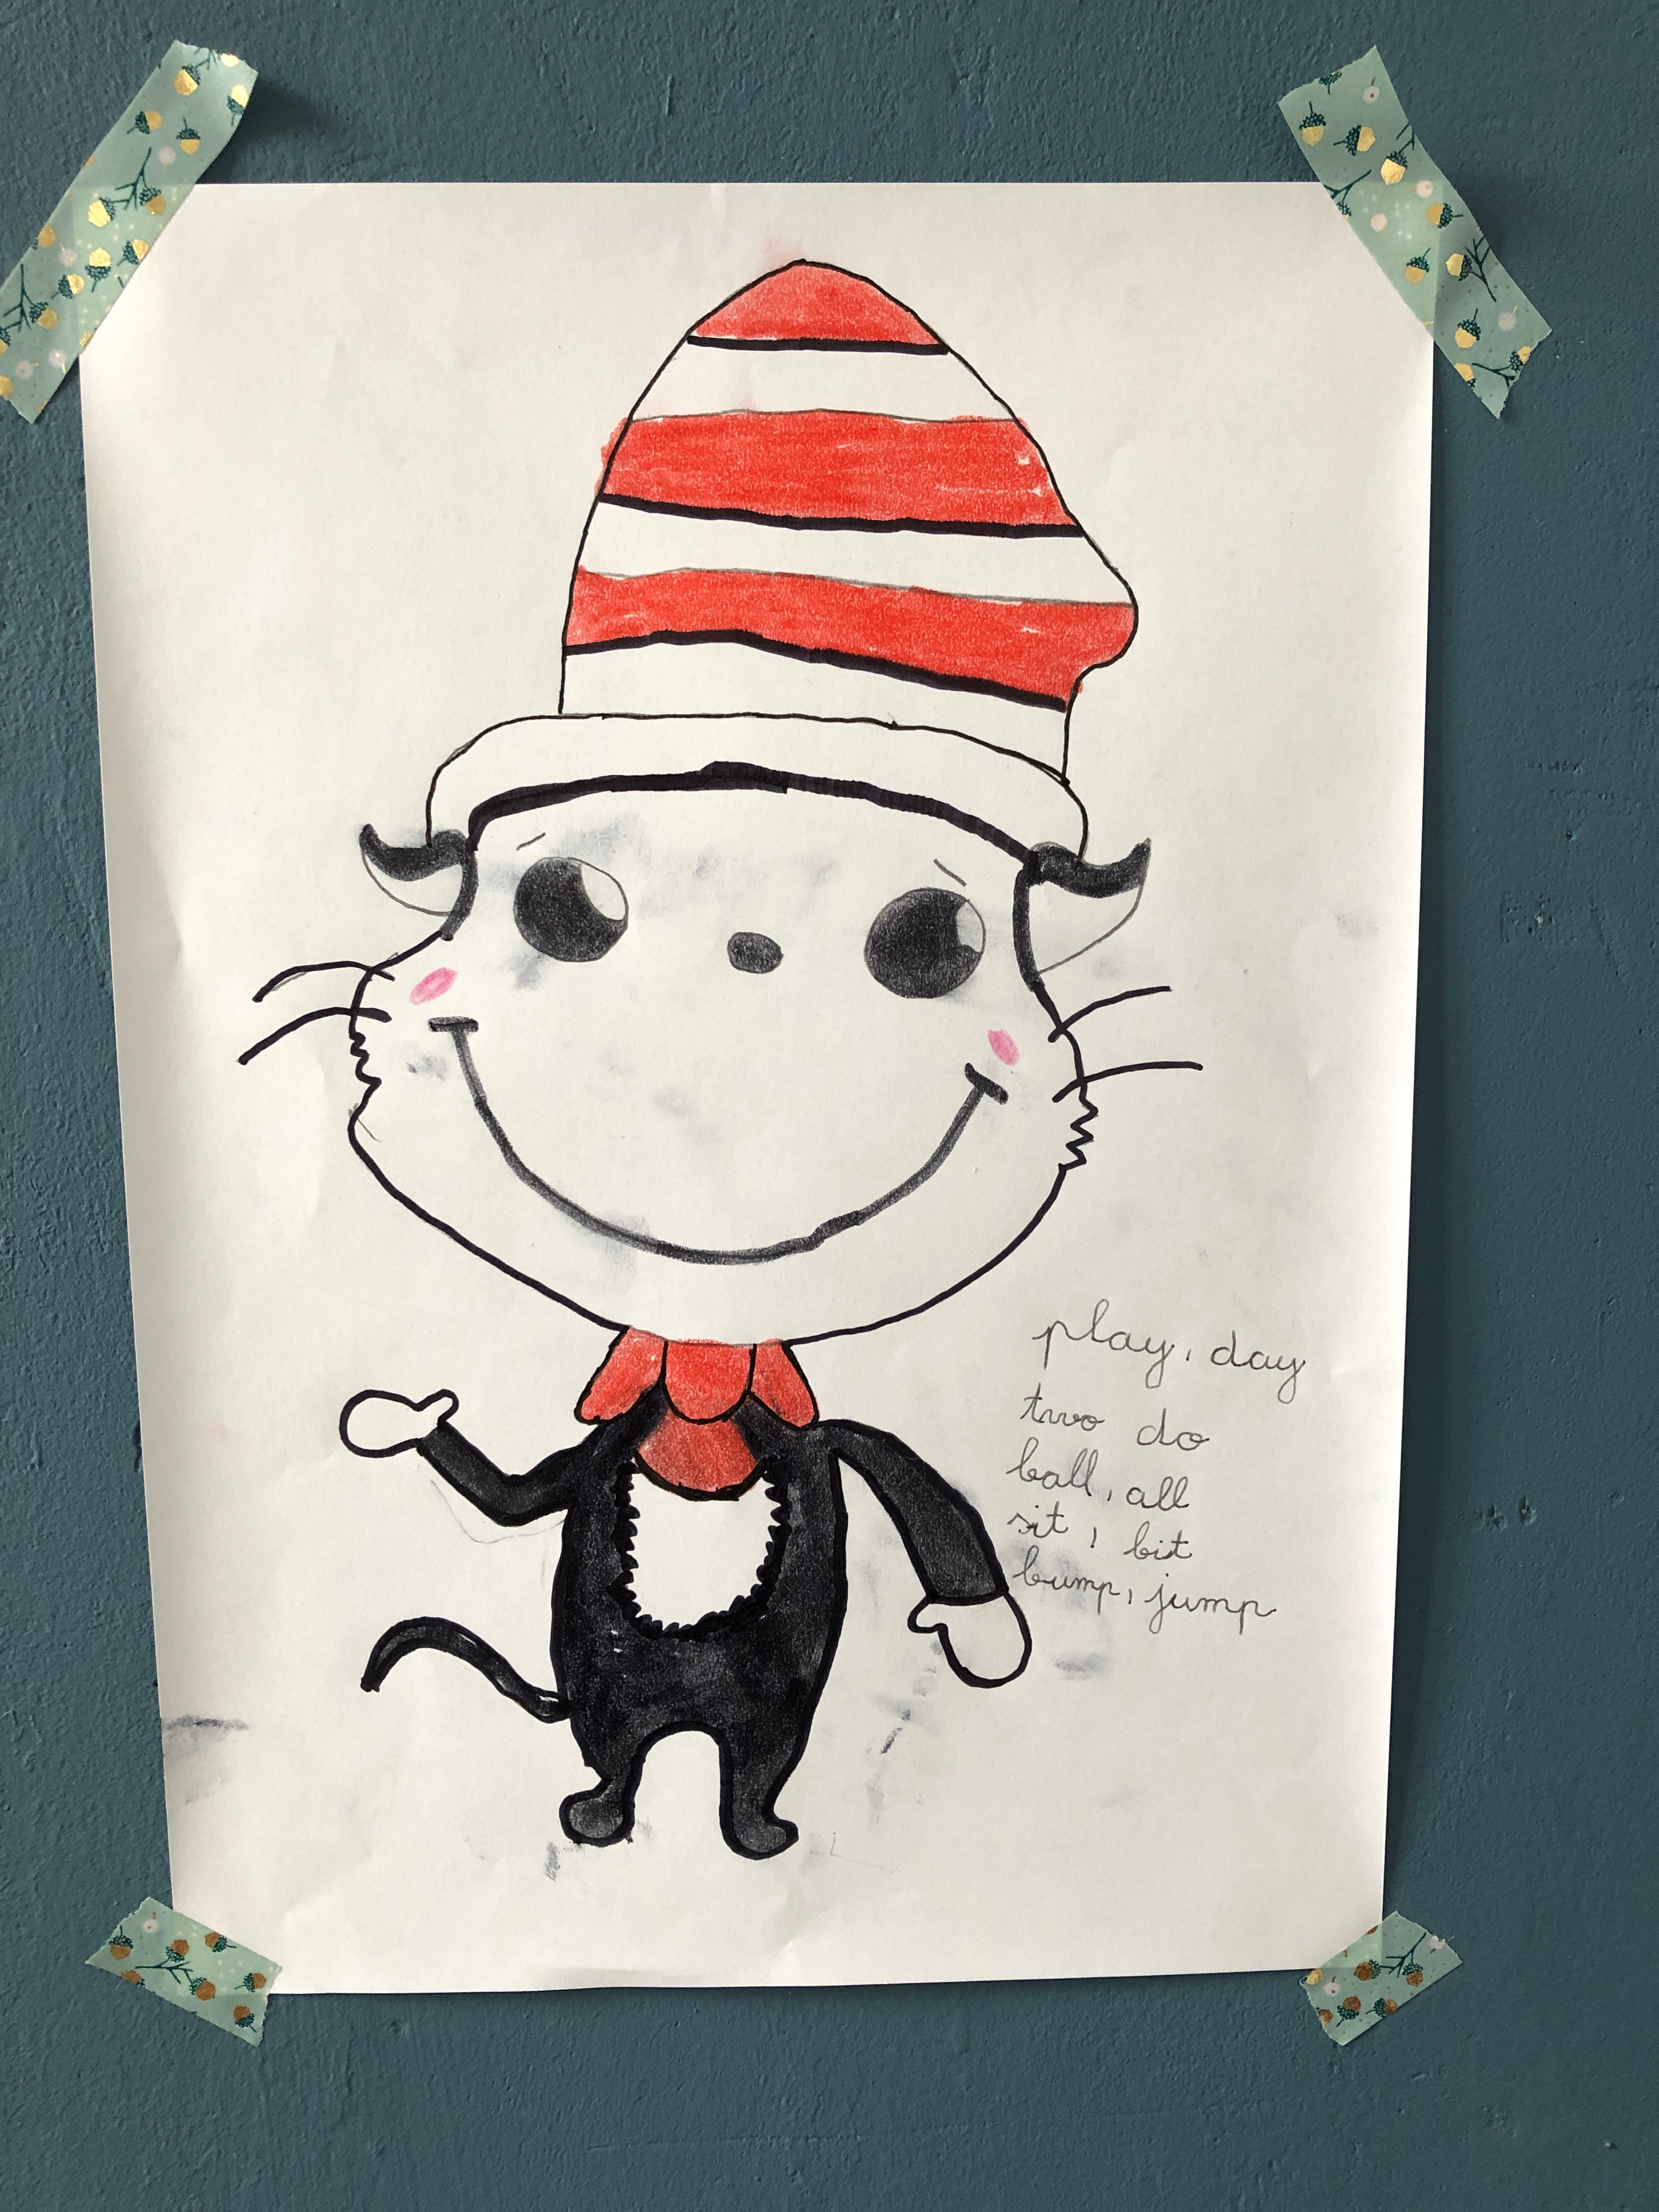 The Cat in the Hat, rhyming words